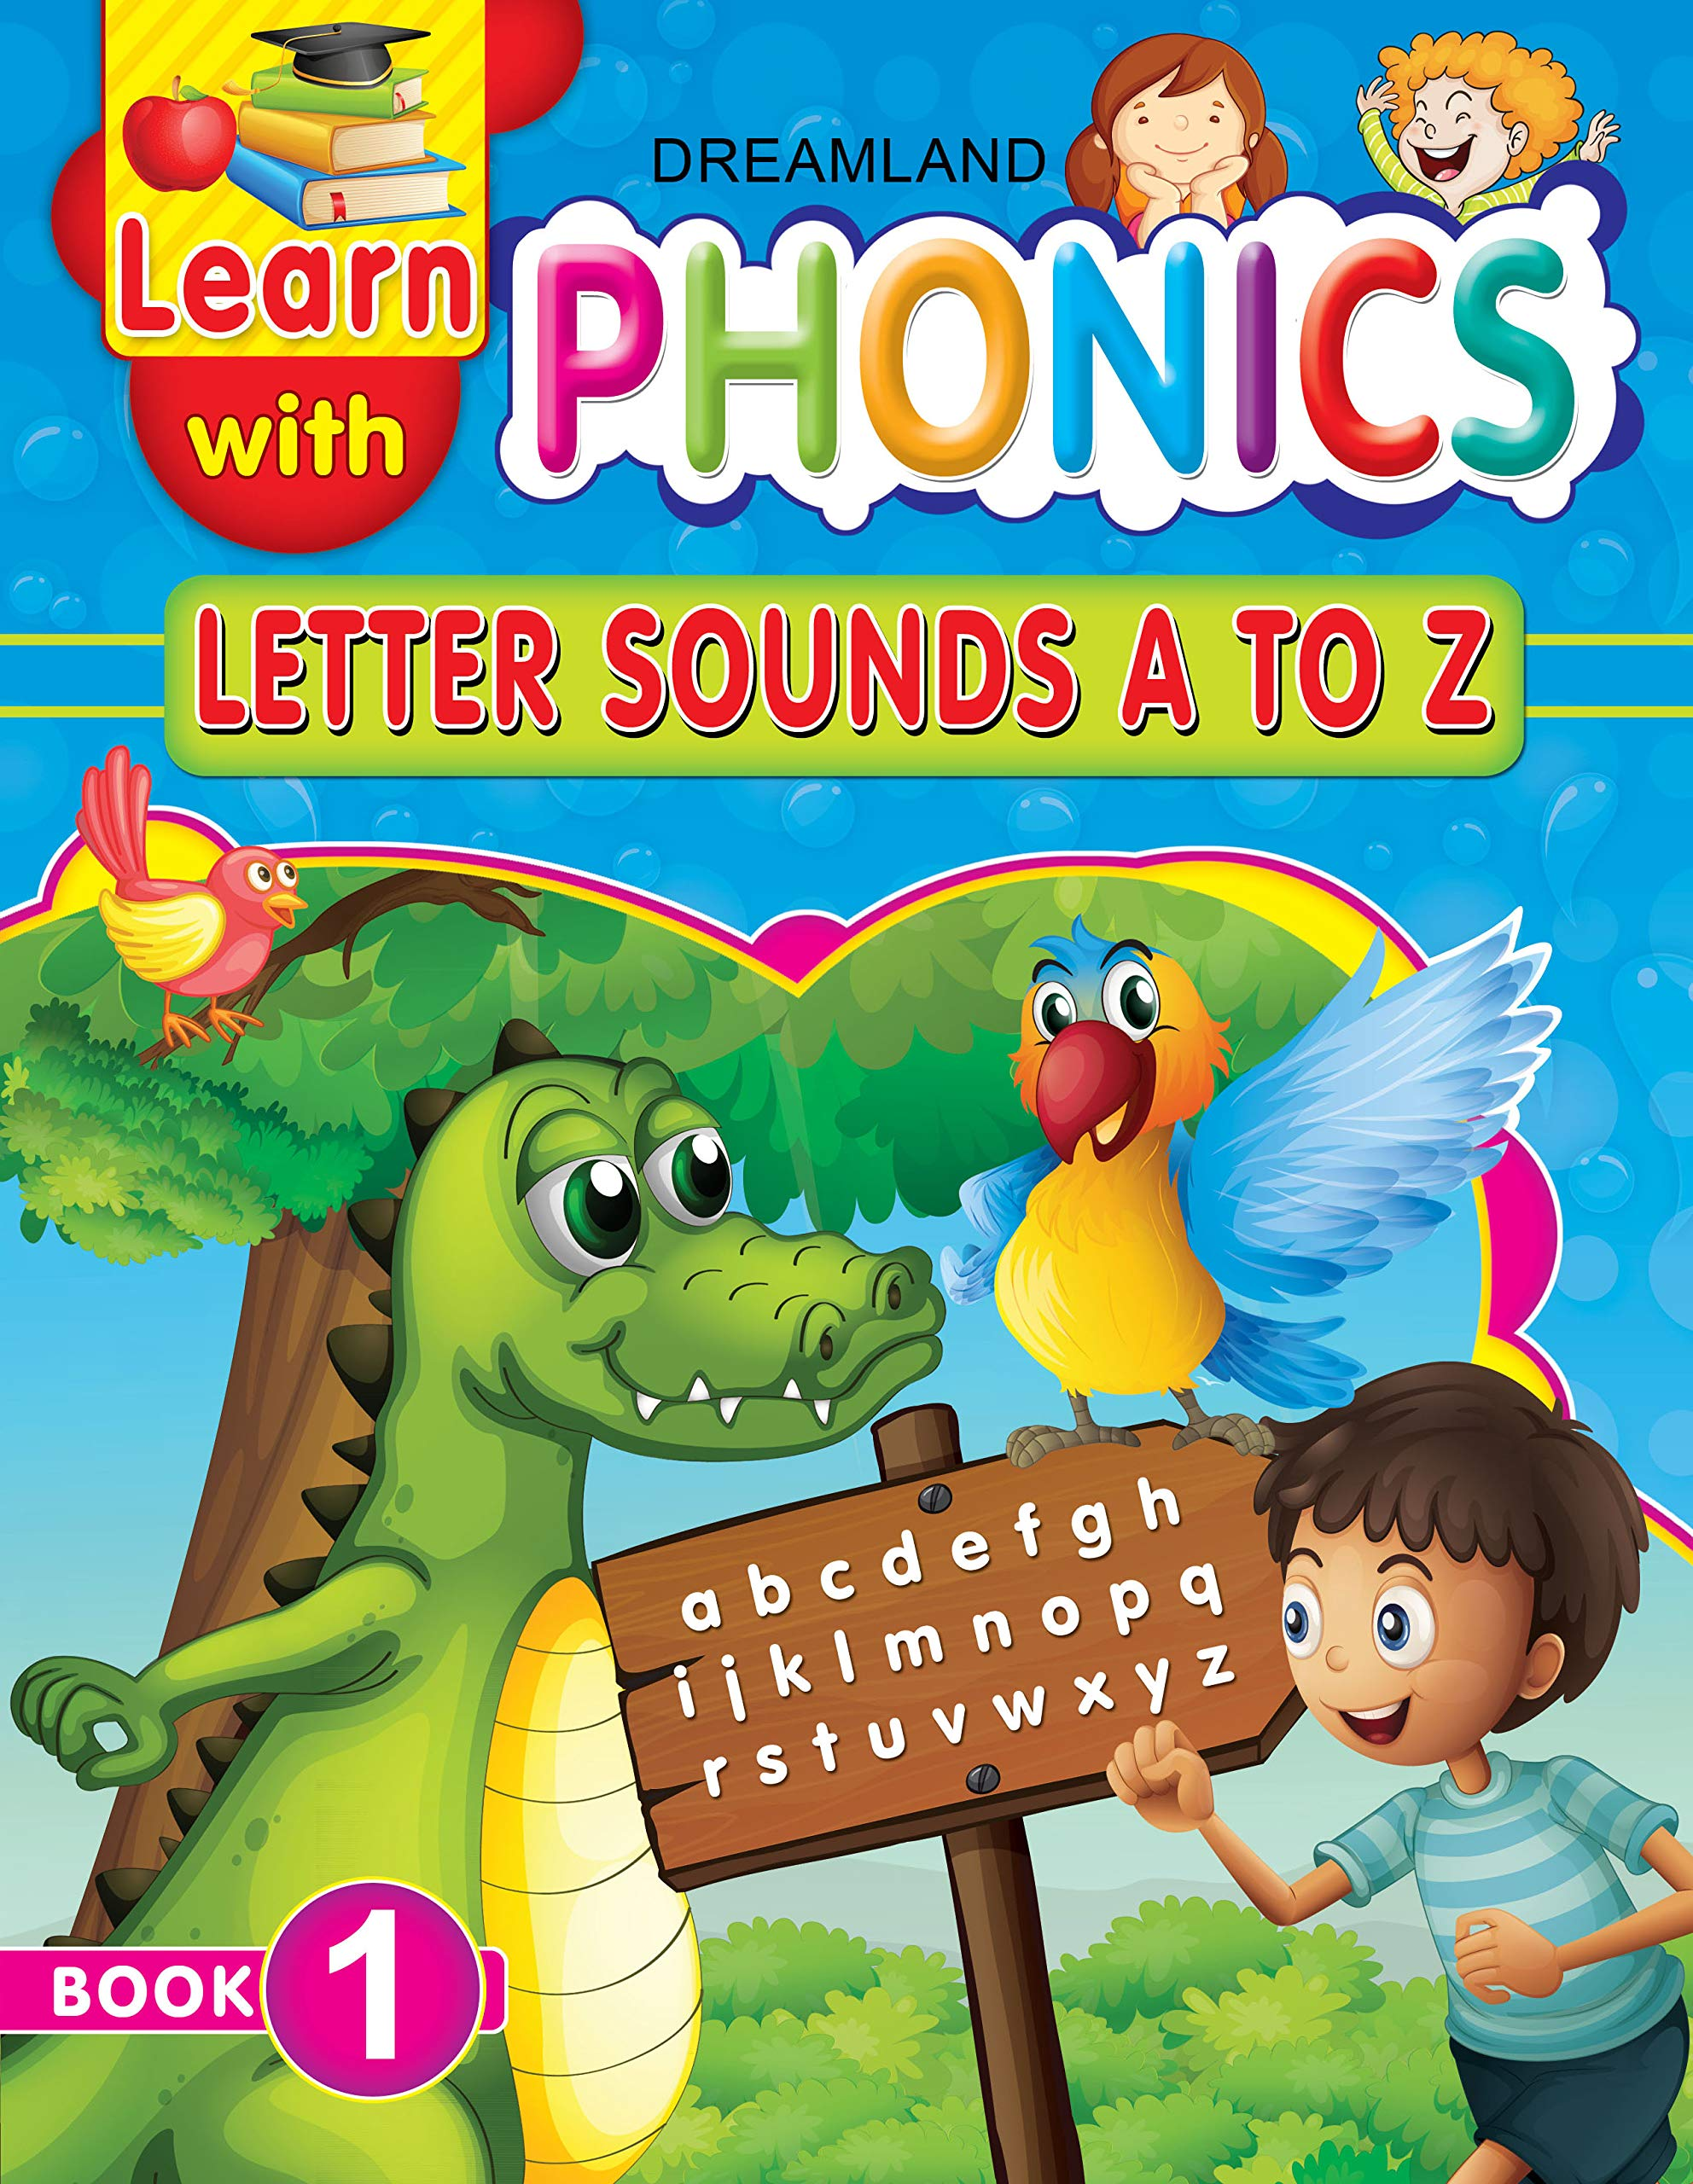 Learn with Phonics (Letter Sounds A to Z)